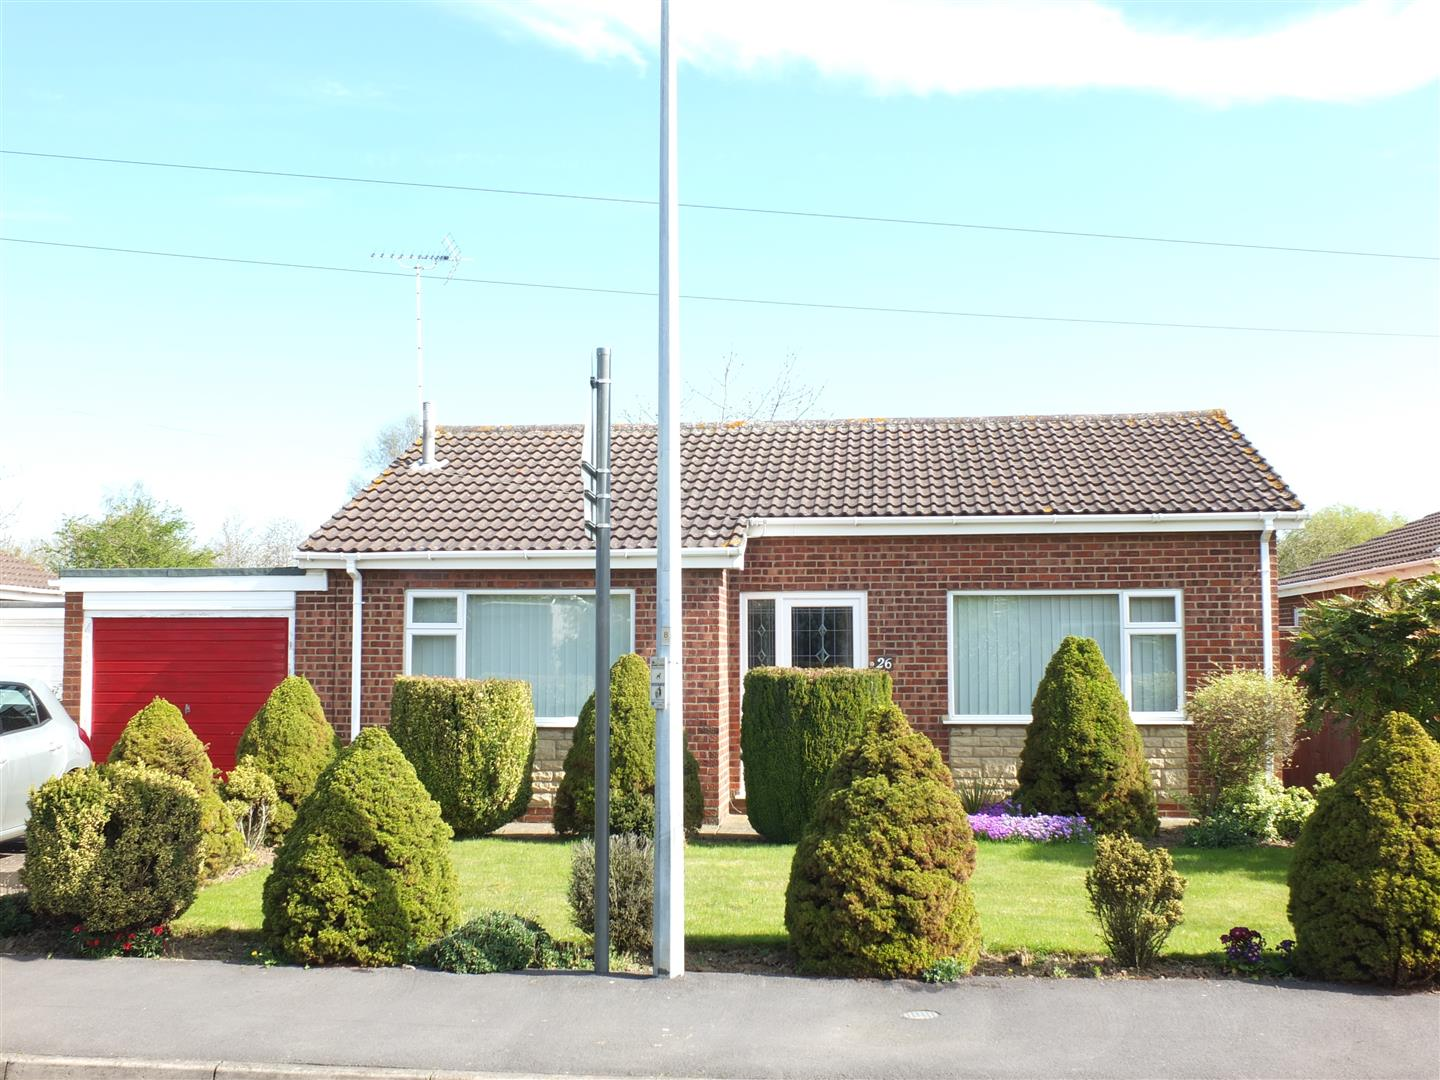 2 bed detached bungalow to rent in Long Sutton Spalding, PE12 9EP - Property Image 1